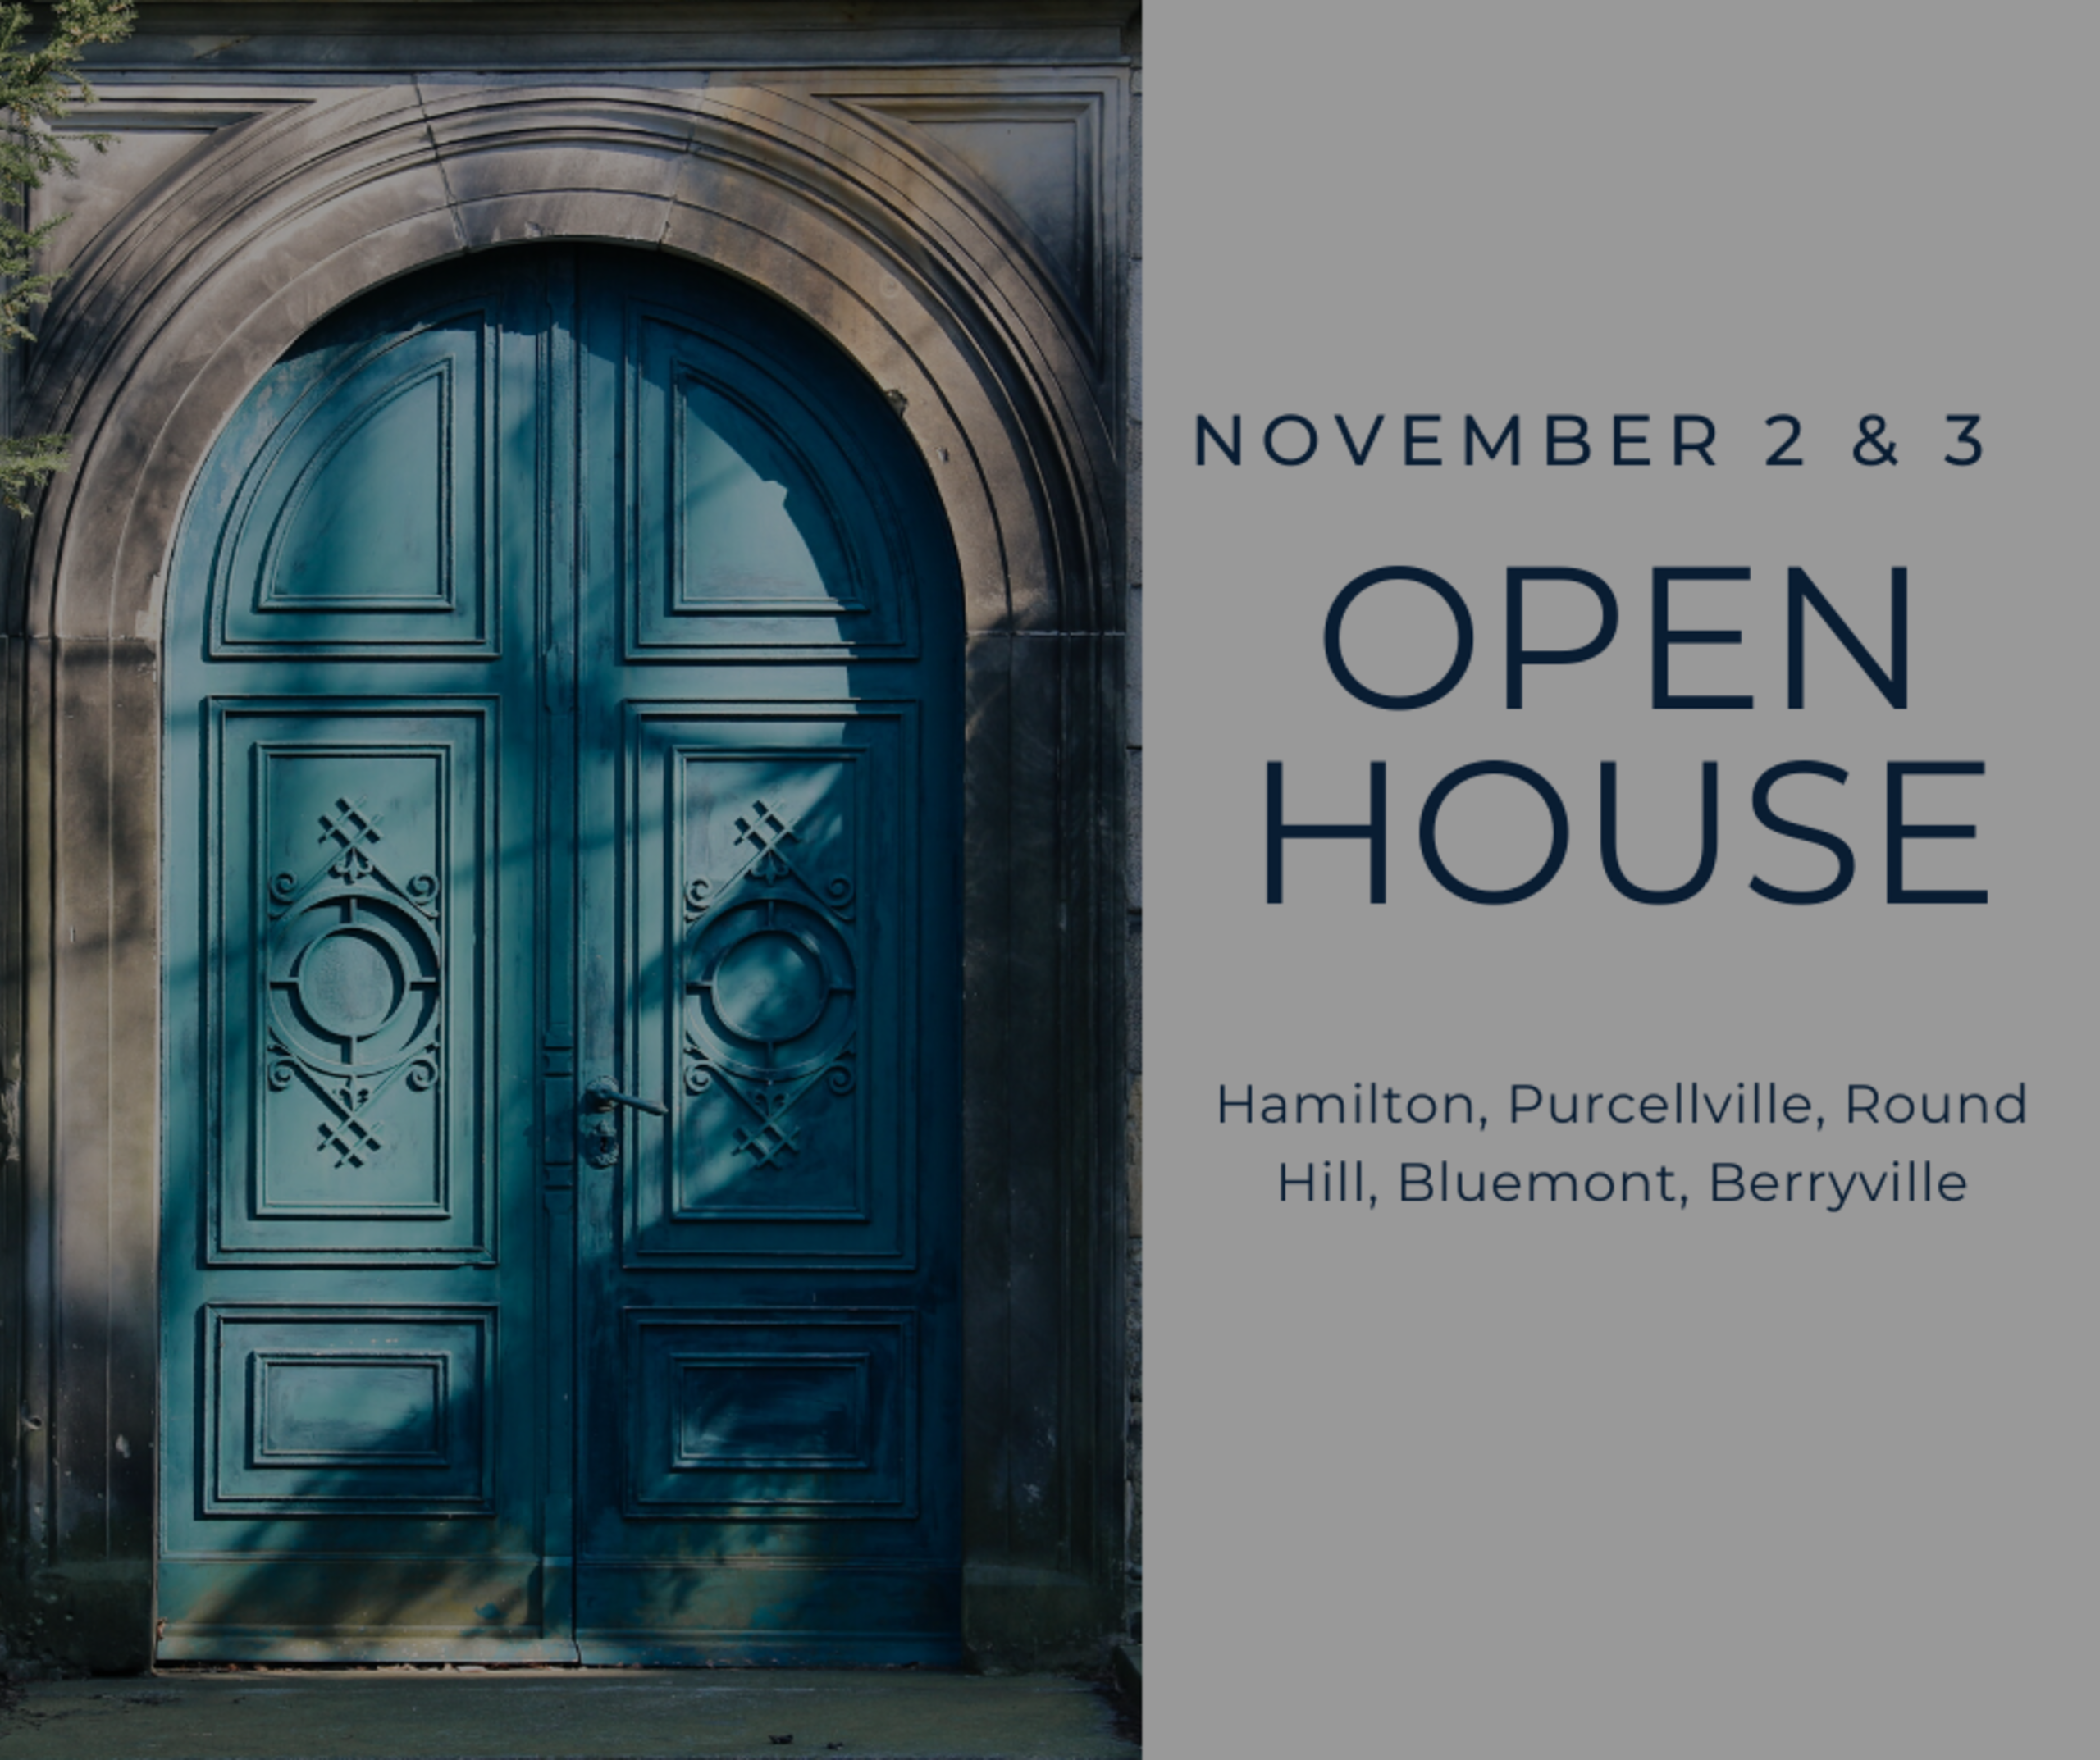 Open House List 11/2/19 – 11/3/19